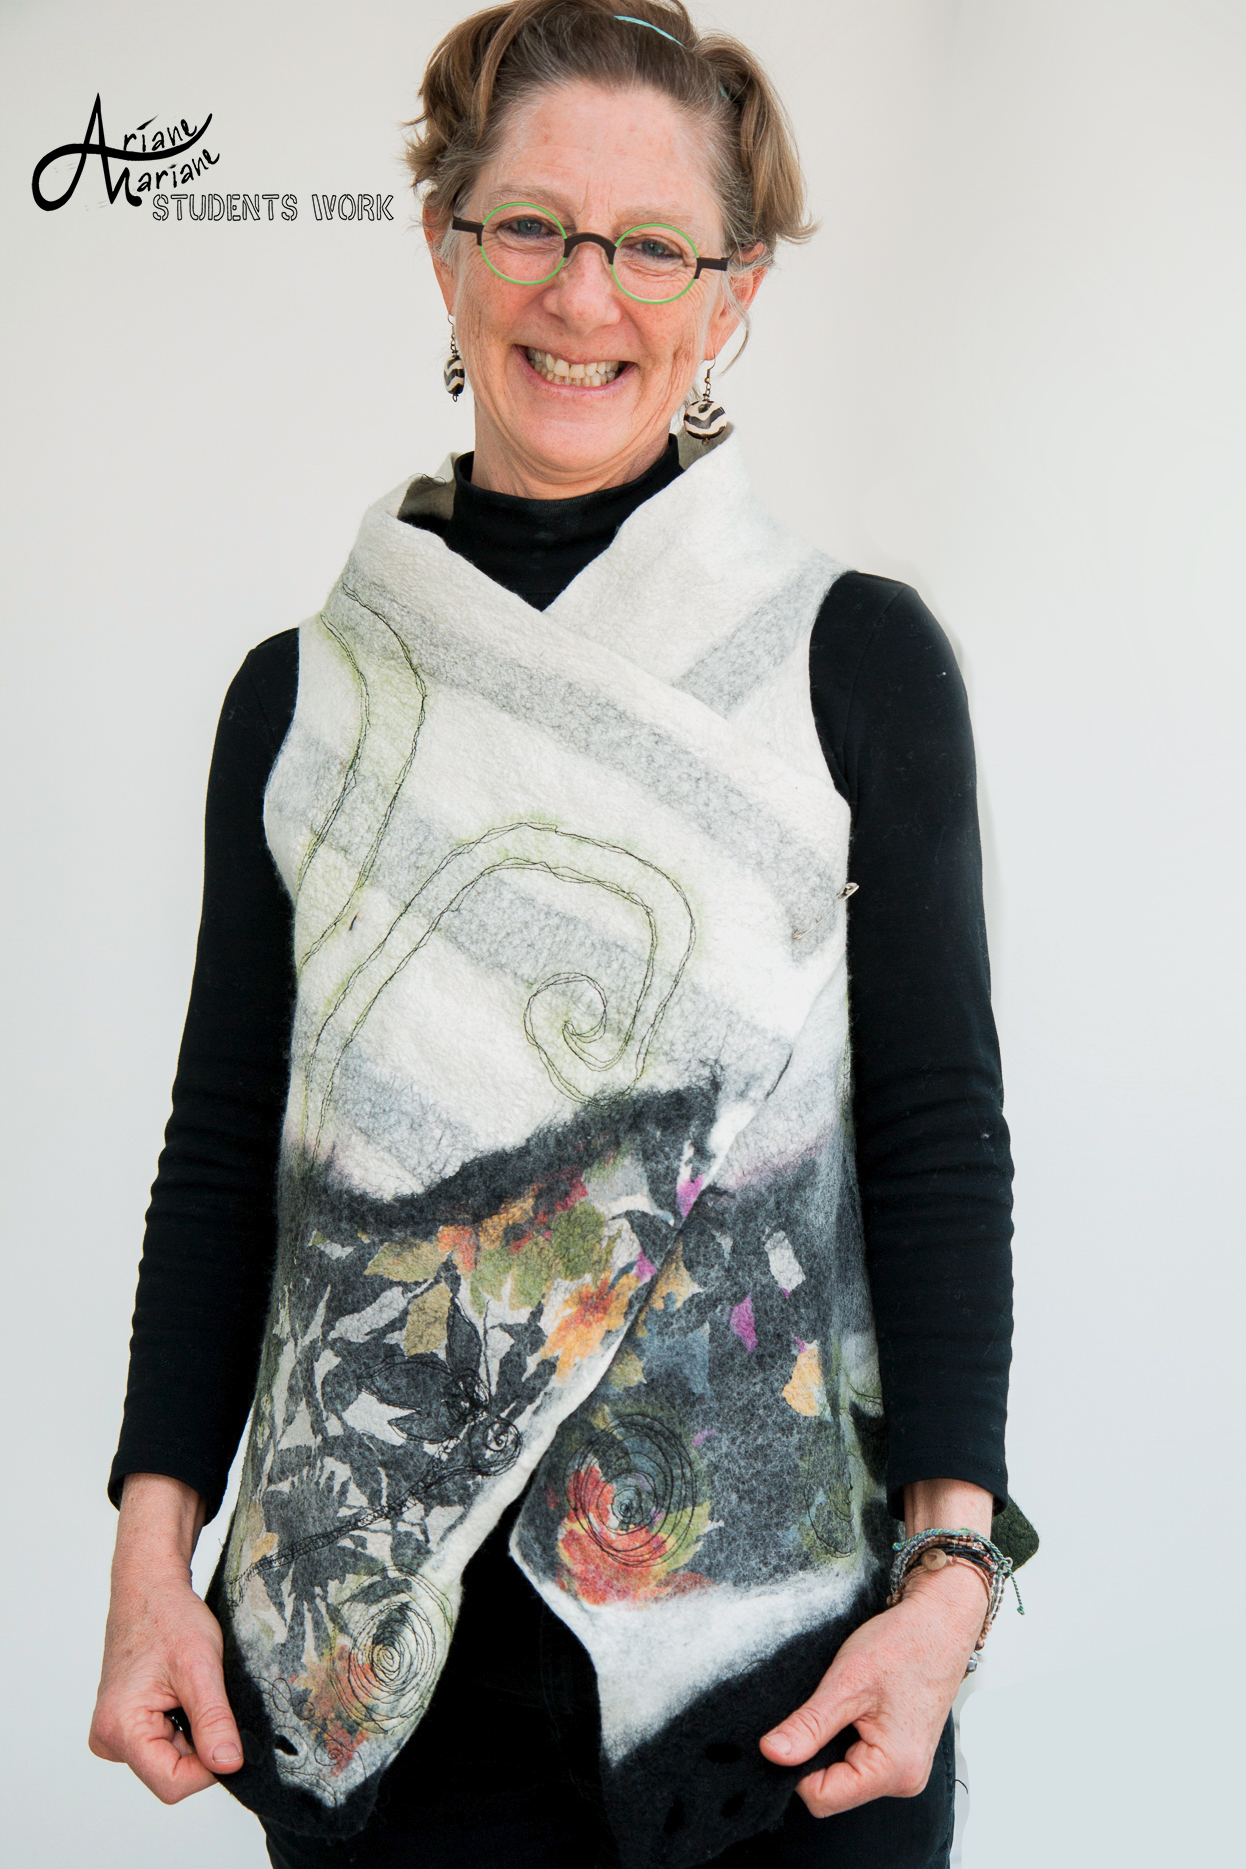 Ariane-Mariane-art-vest-workshop-Robin-Landris-6674.jpg